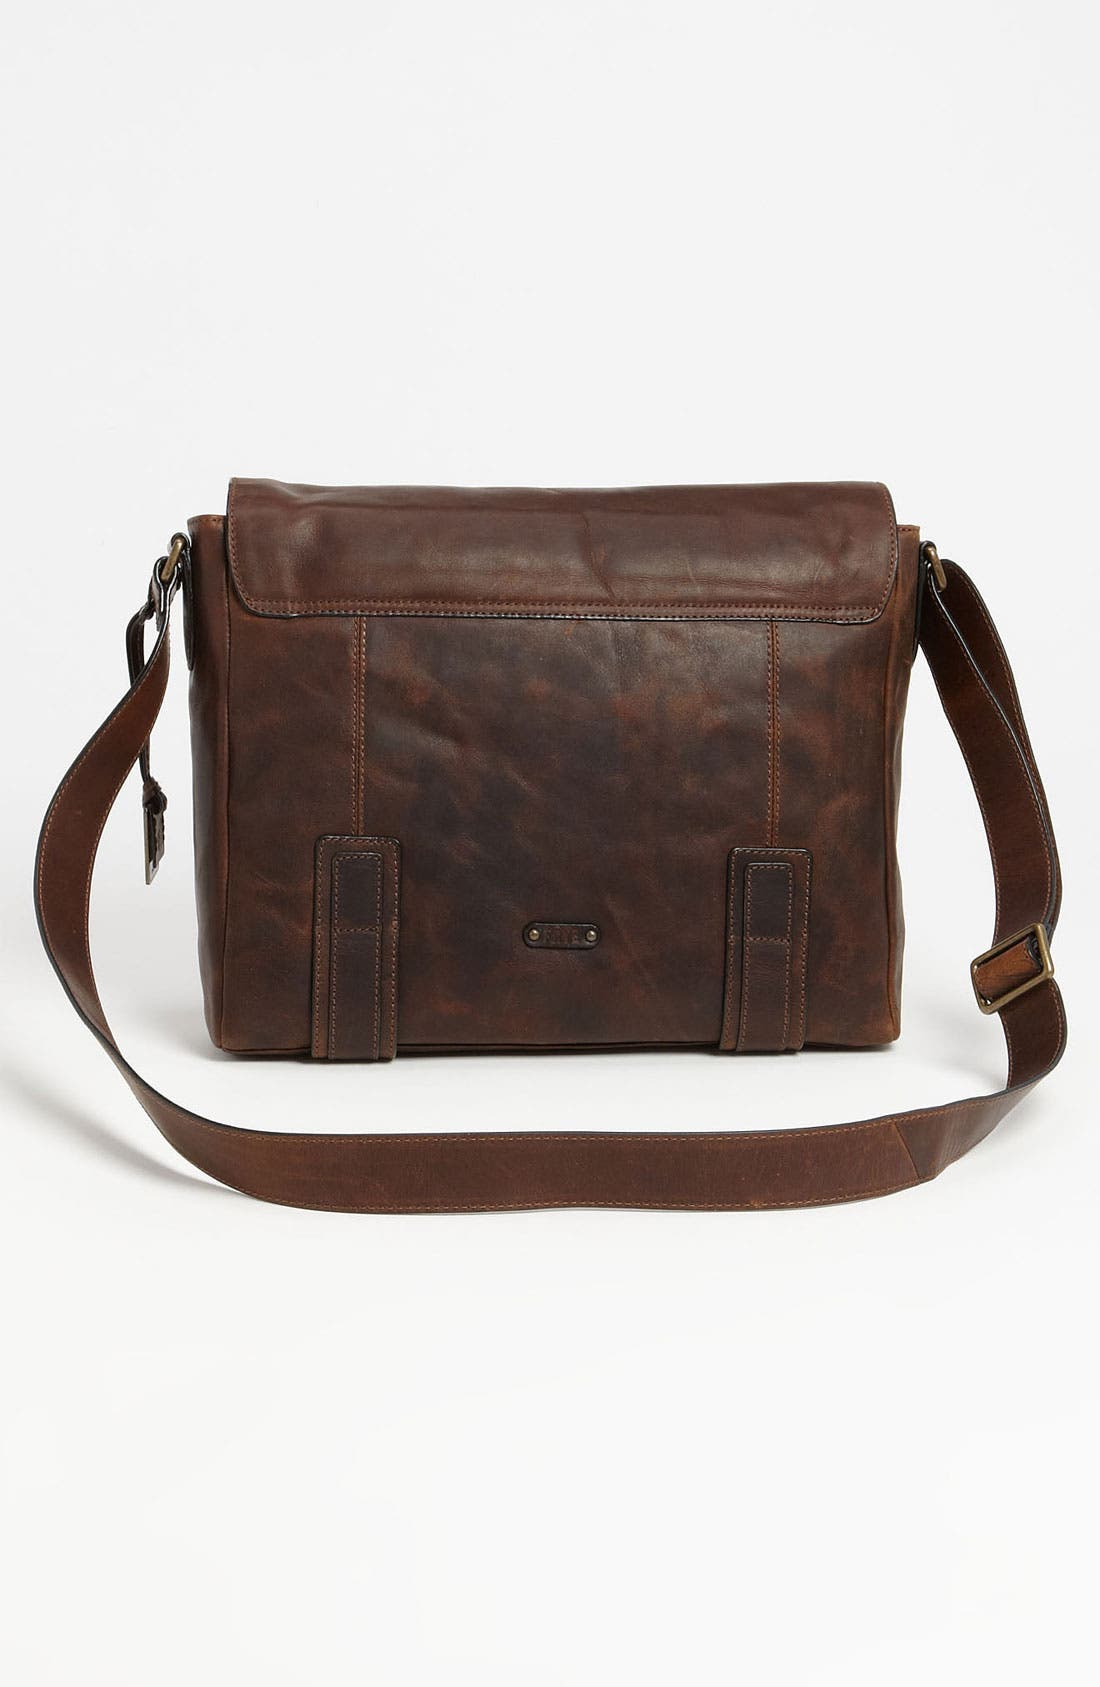 'Logan' Messenger Bag,                             Alternate thumbnail 9, color,                             ANTIQUE DARK BROWN